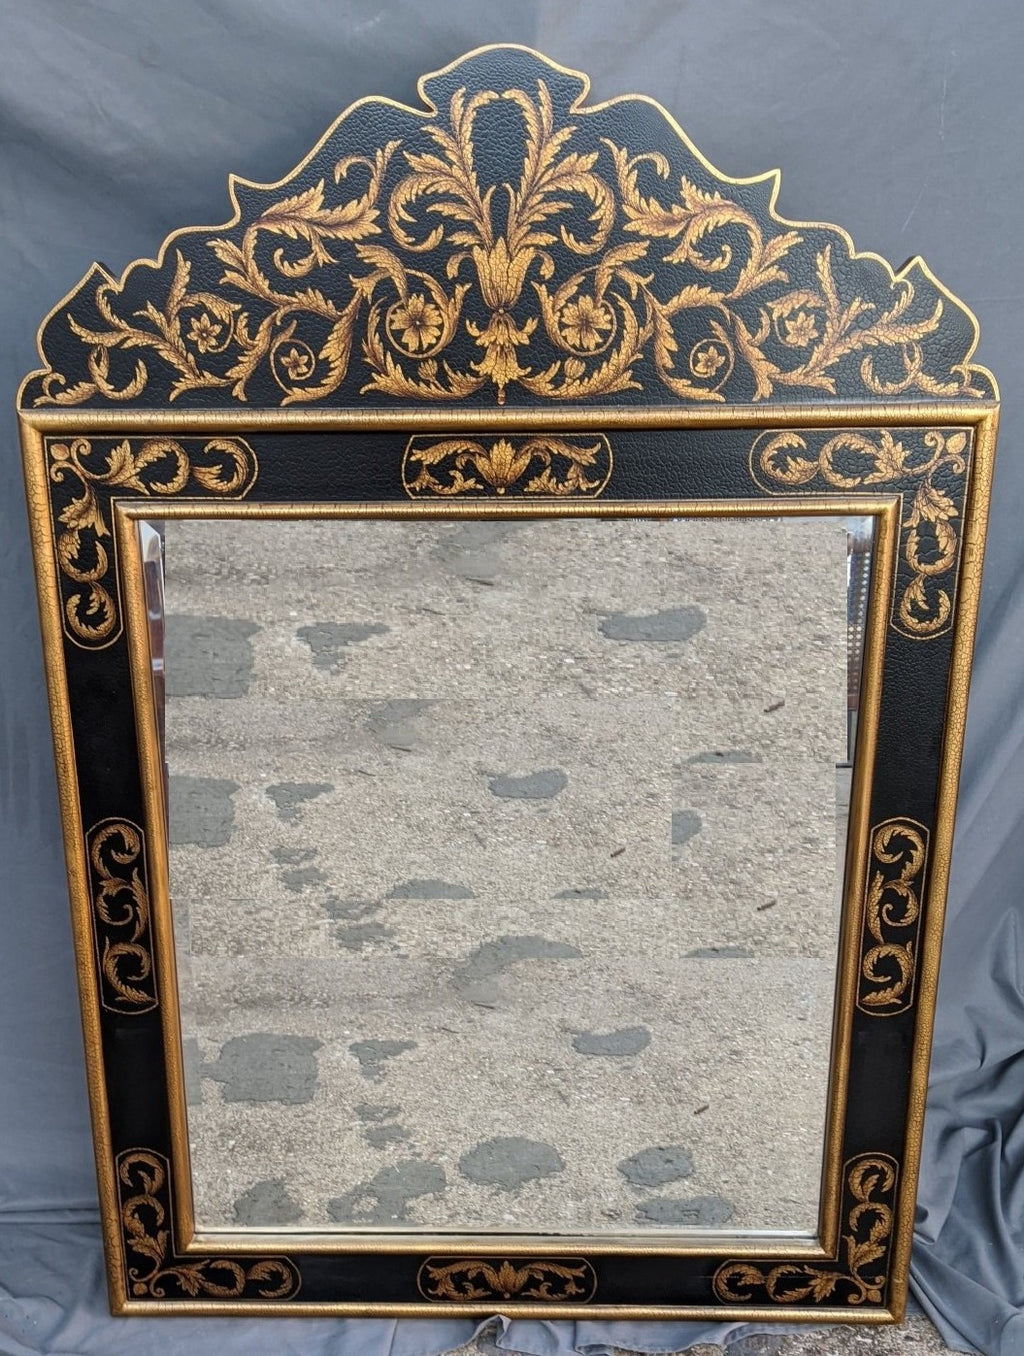 BLACK PAINTED MIRROR WITH PEDIMENT AND GOLD DETAIL